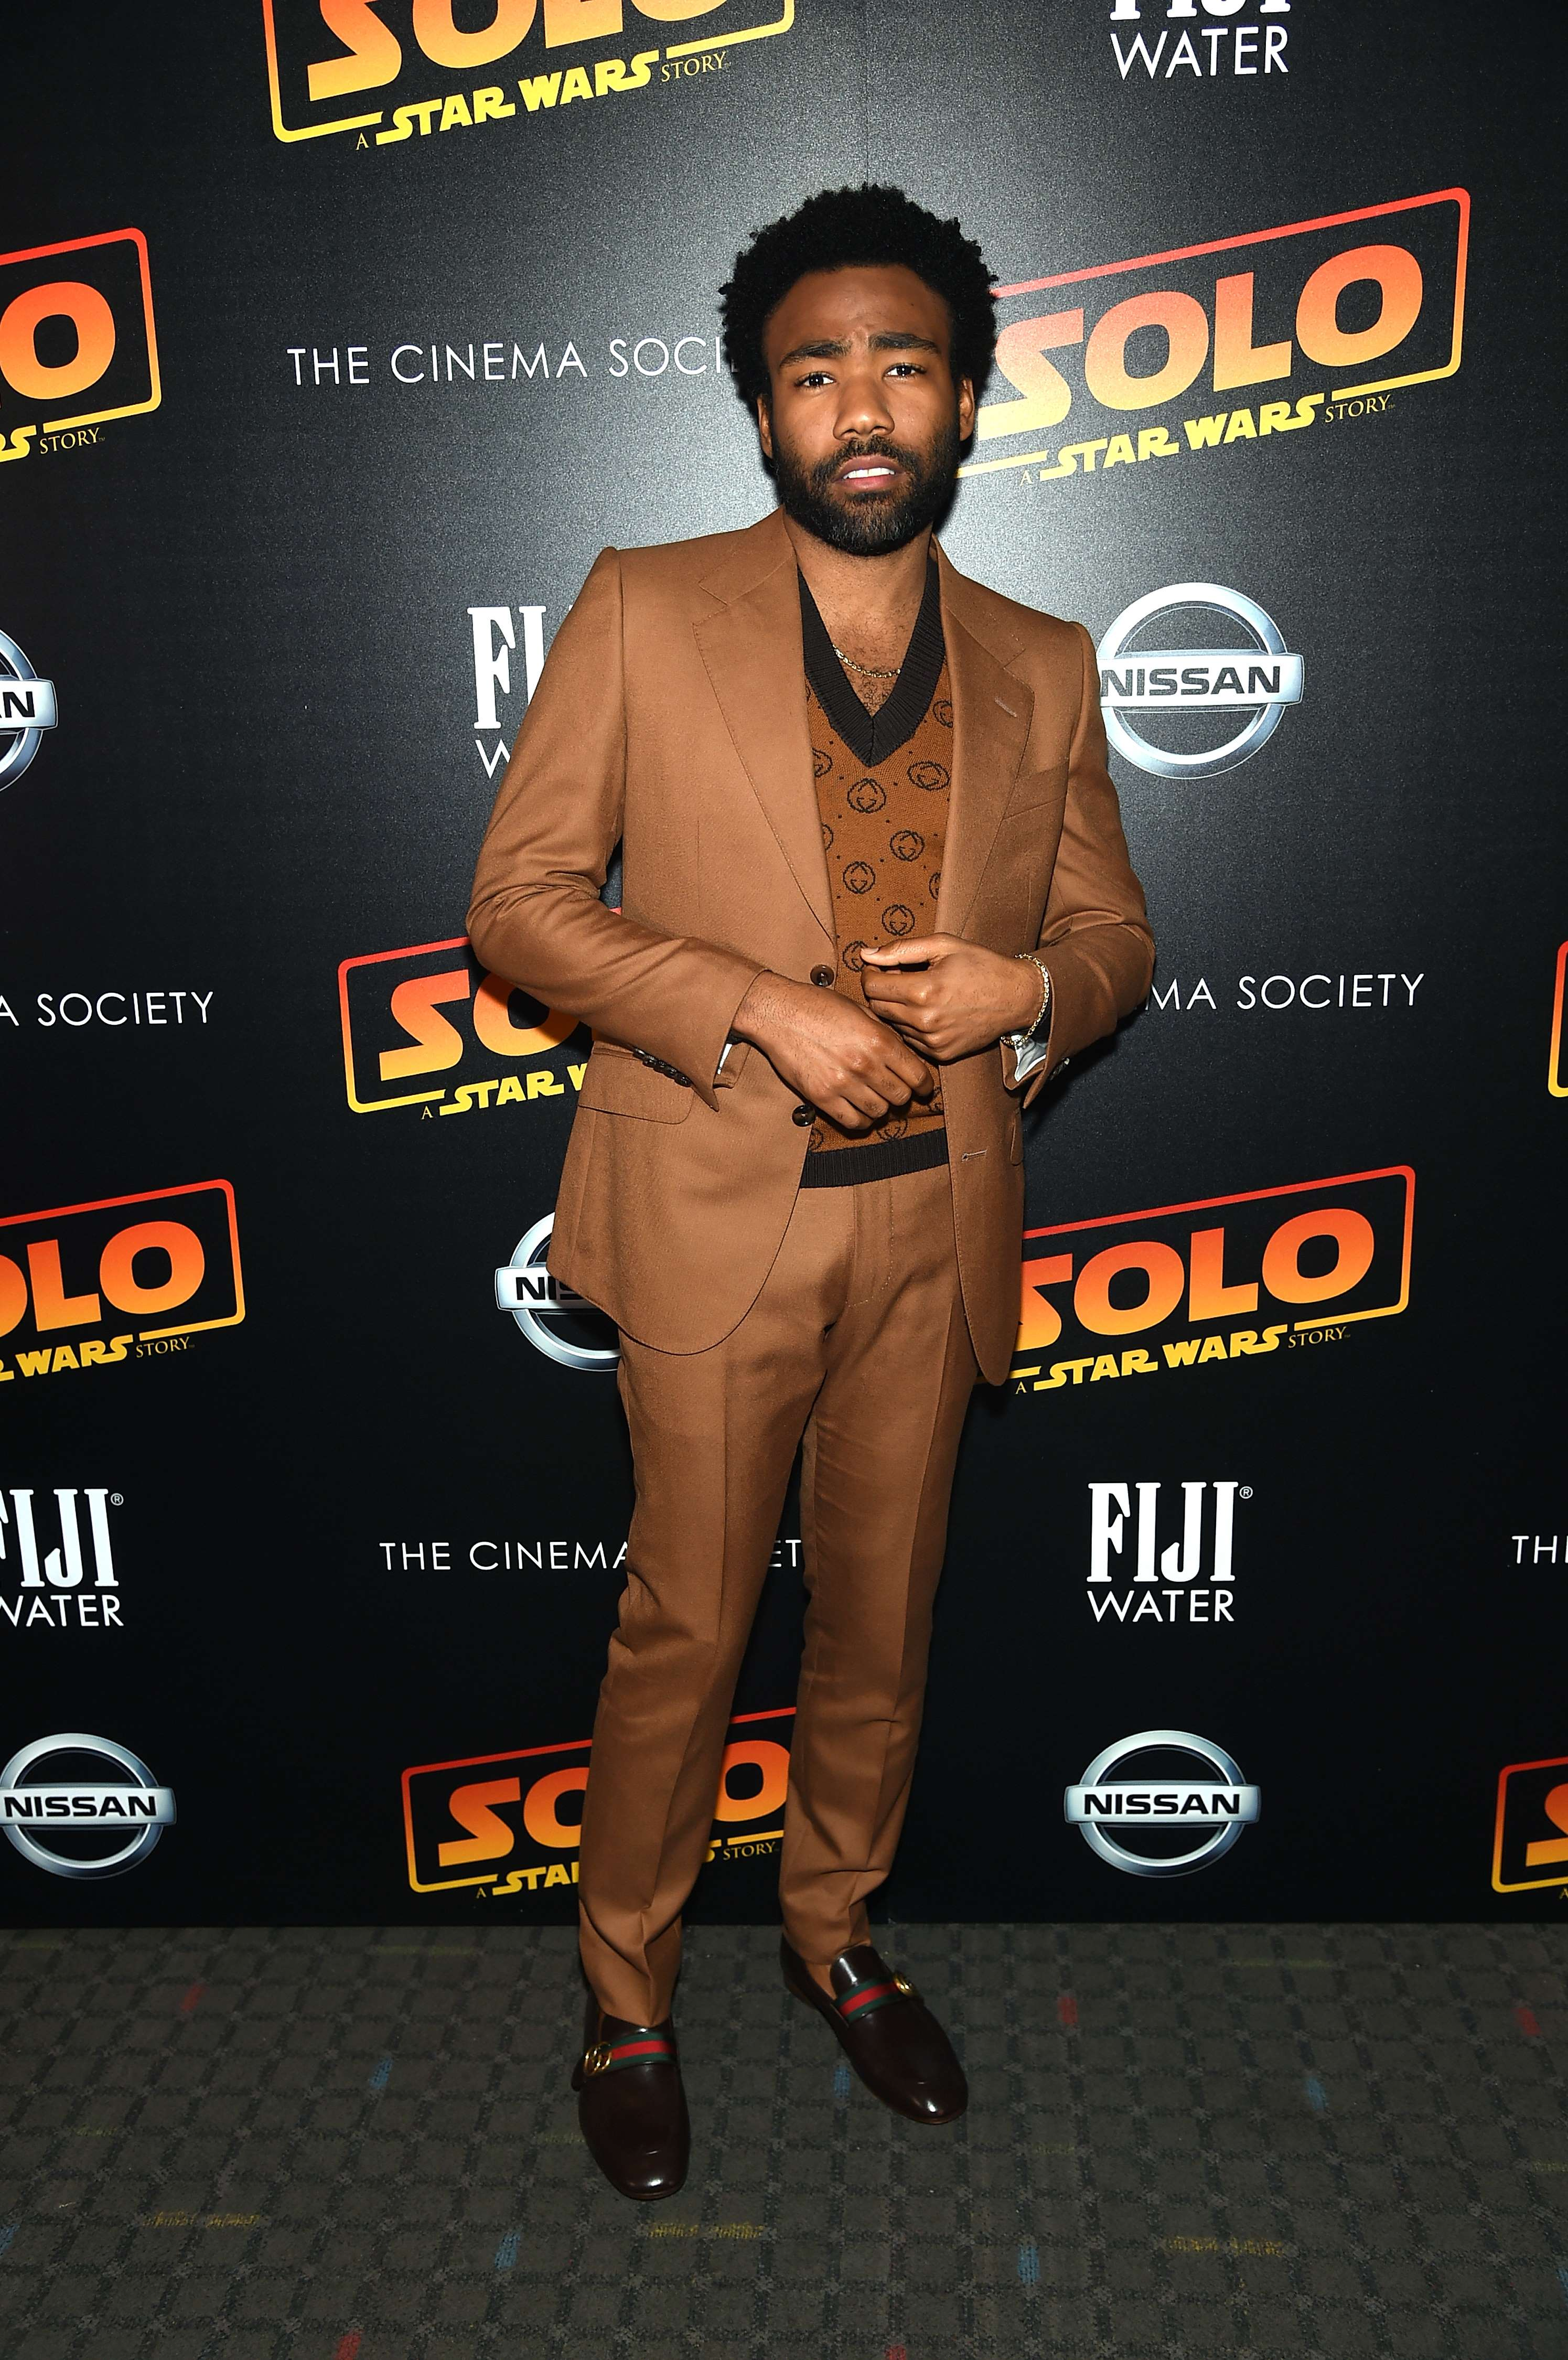 Solo: A Star Wars Story, donald glover, beste outfits, stijl